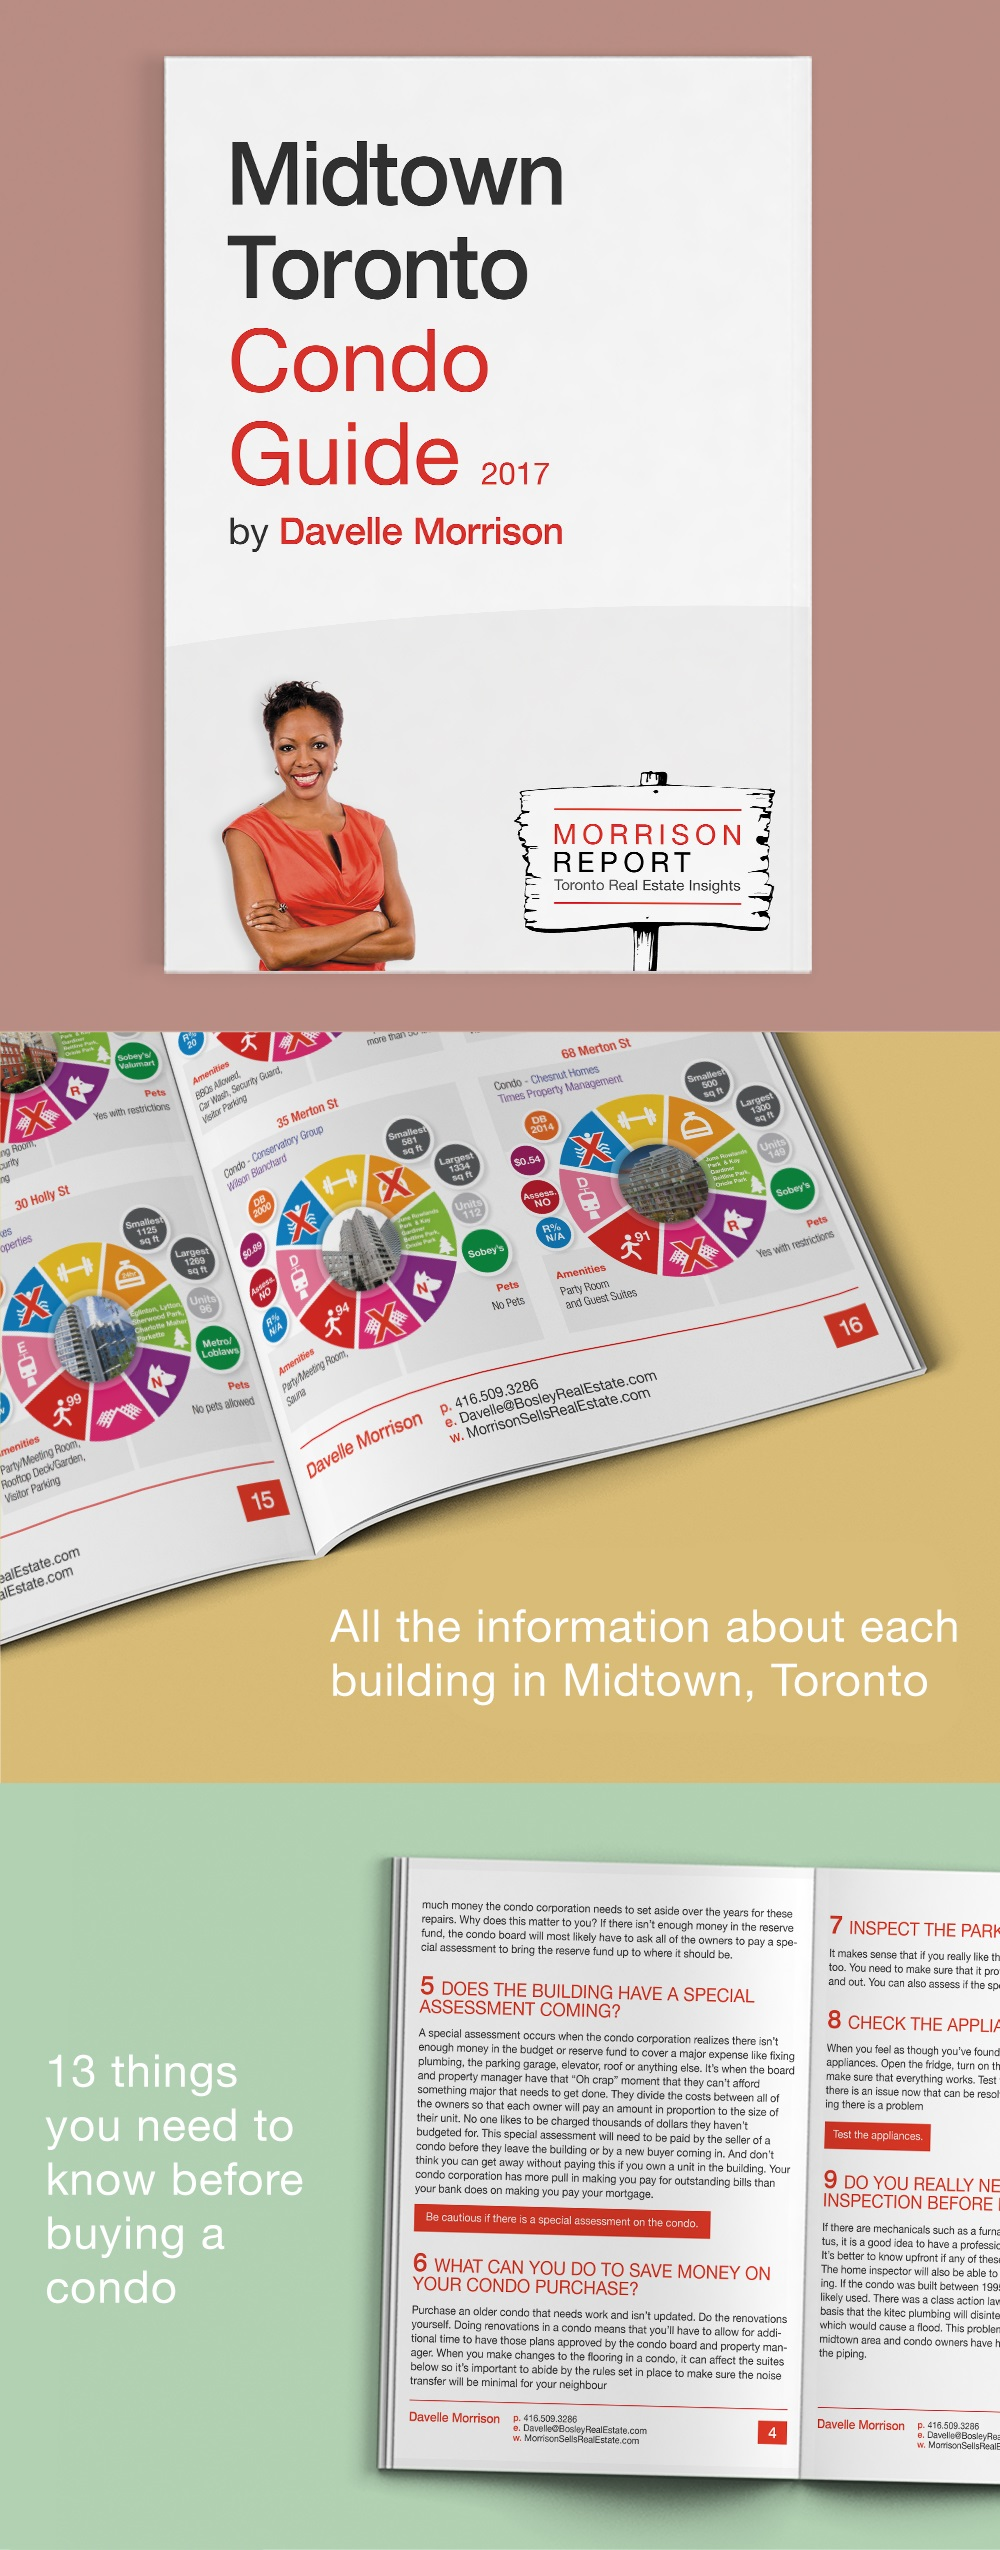 Midtown Toronto Condo Guide